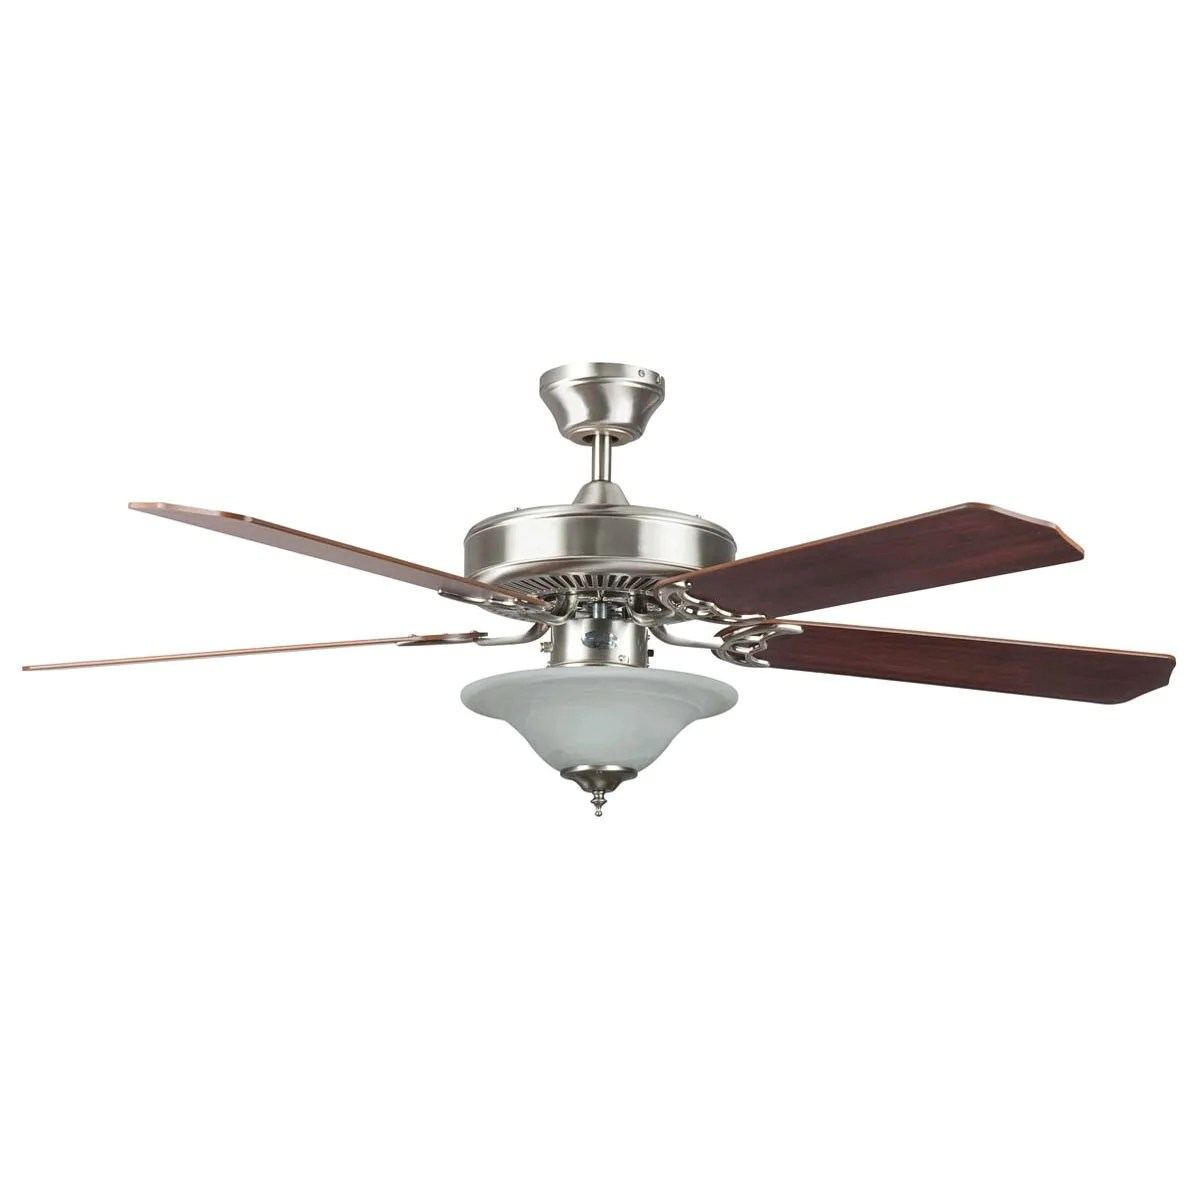 concord fans 52 heritage square stainless steel ceiling fan with ligh faucetlist com [ 1200 x 1200 Pixel ]